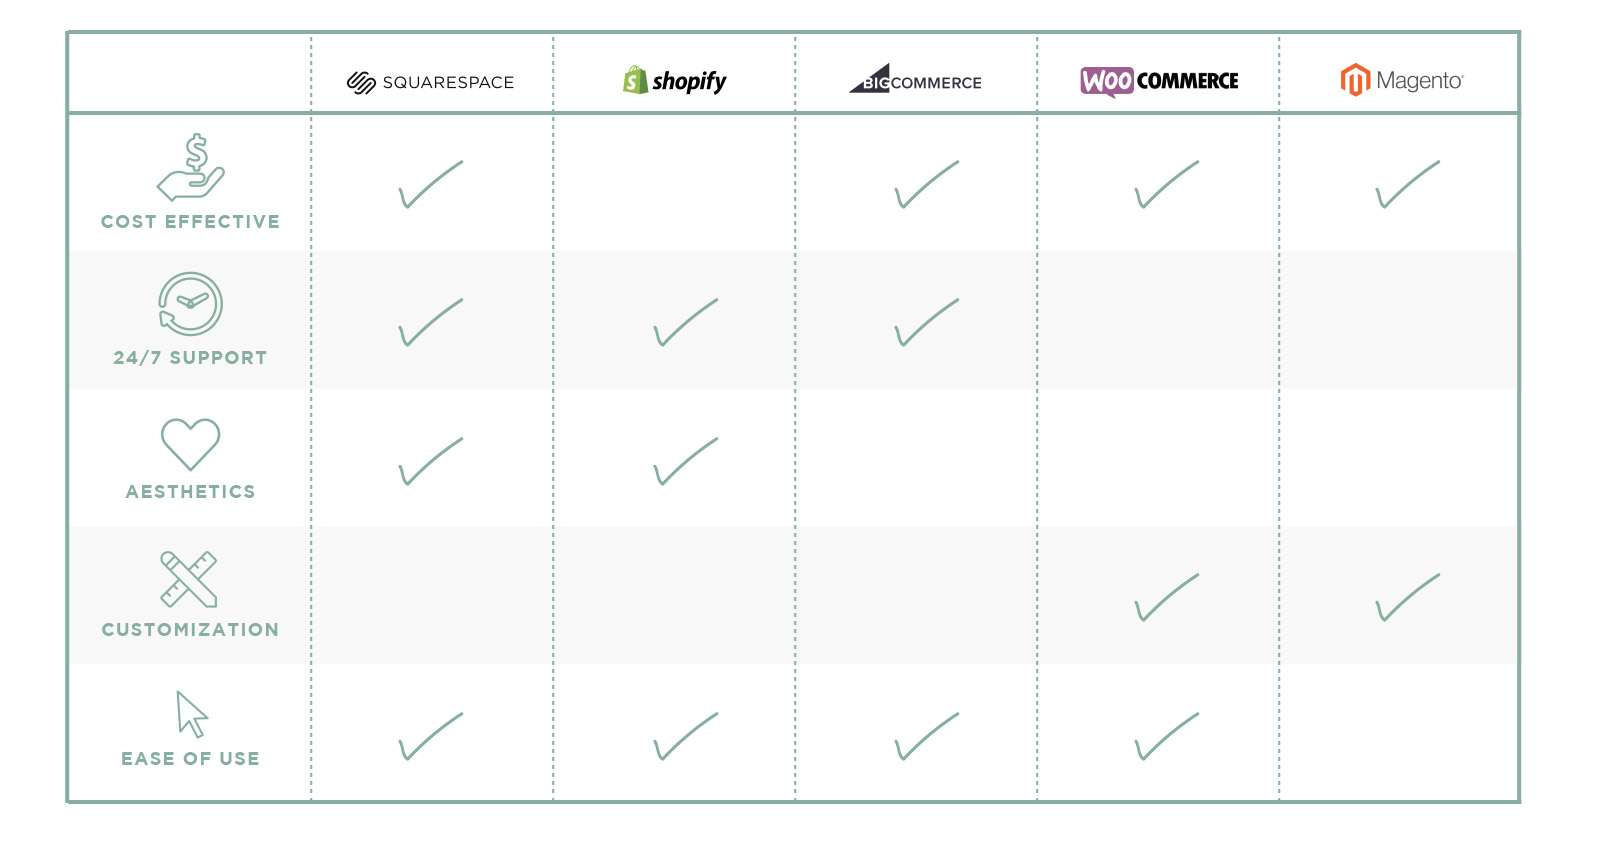 Top ecommerce platforms comparison chart